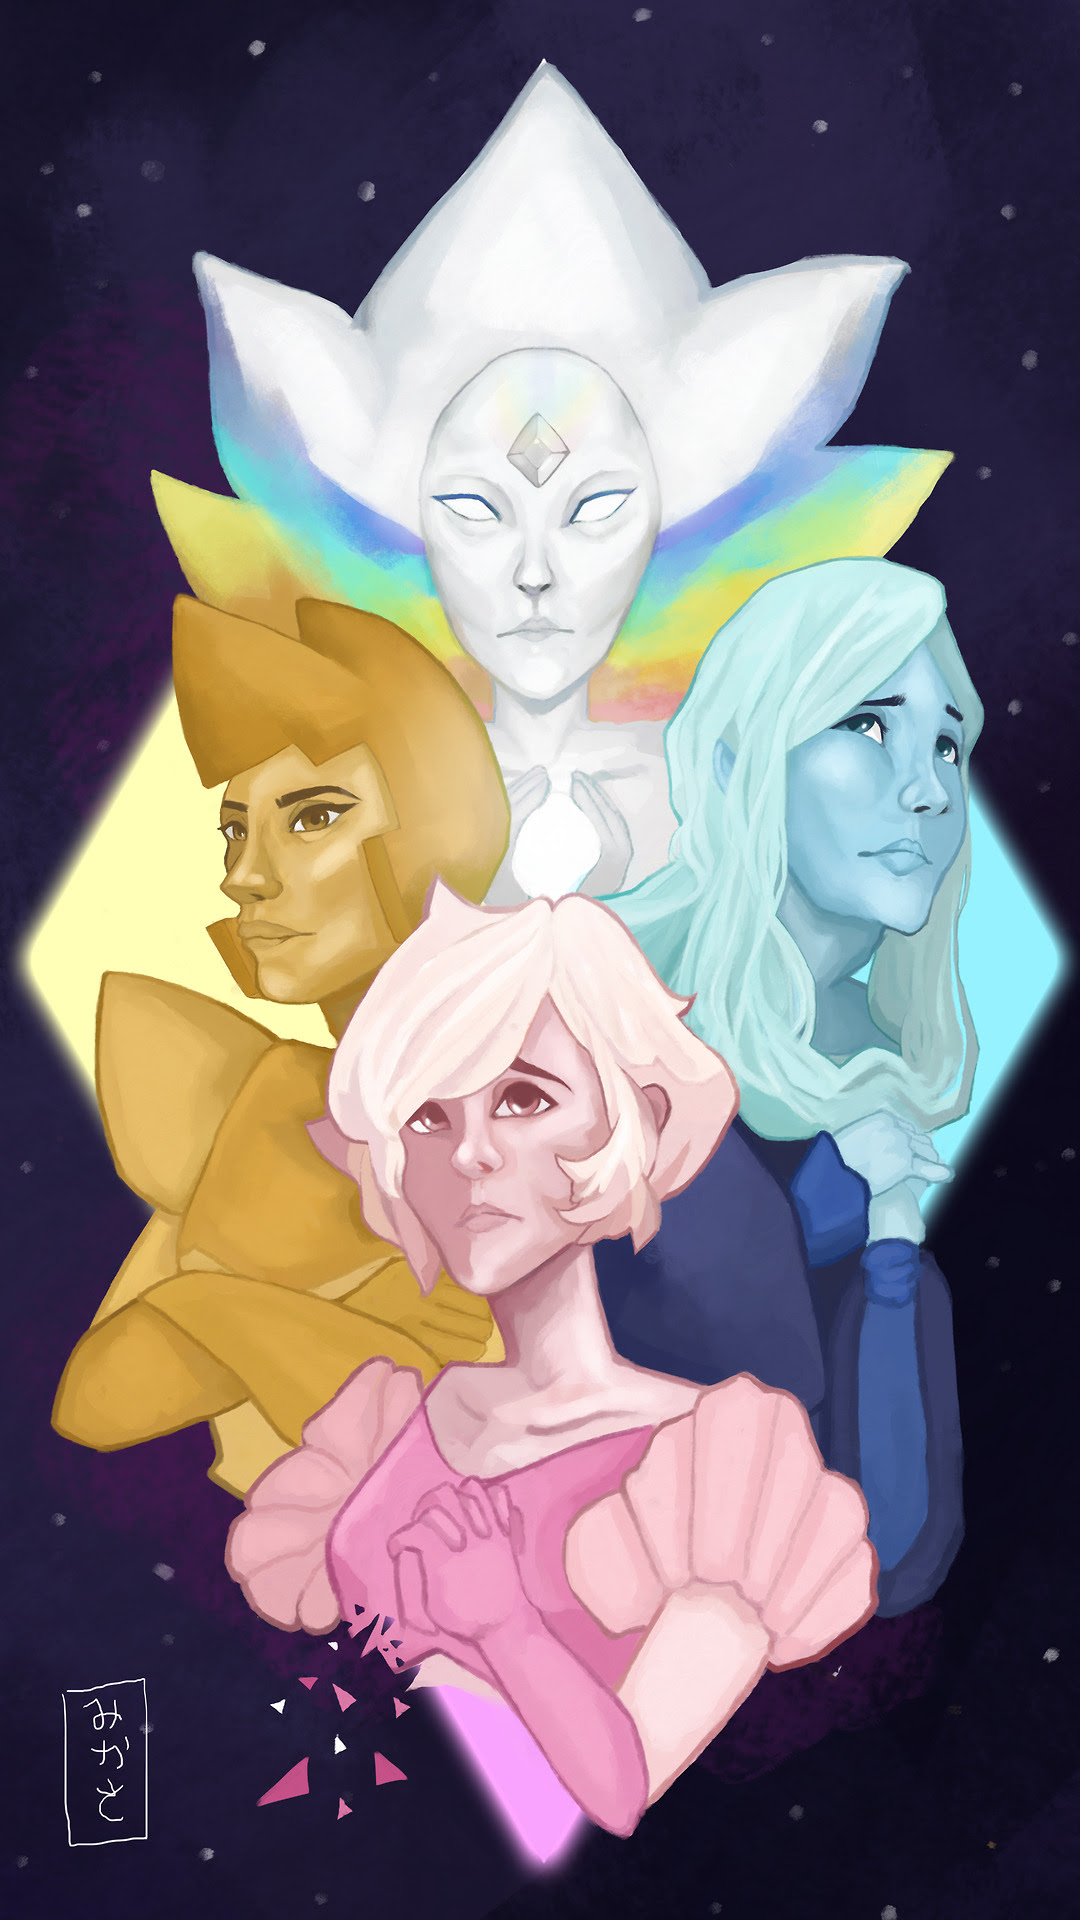 The Diamonds after so long! (This took forever to render and I wanna cry)